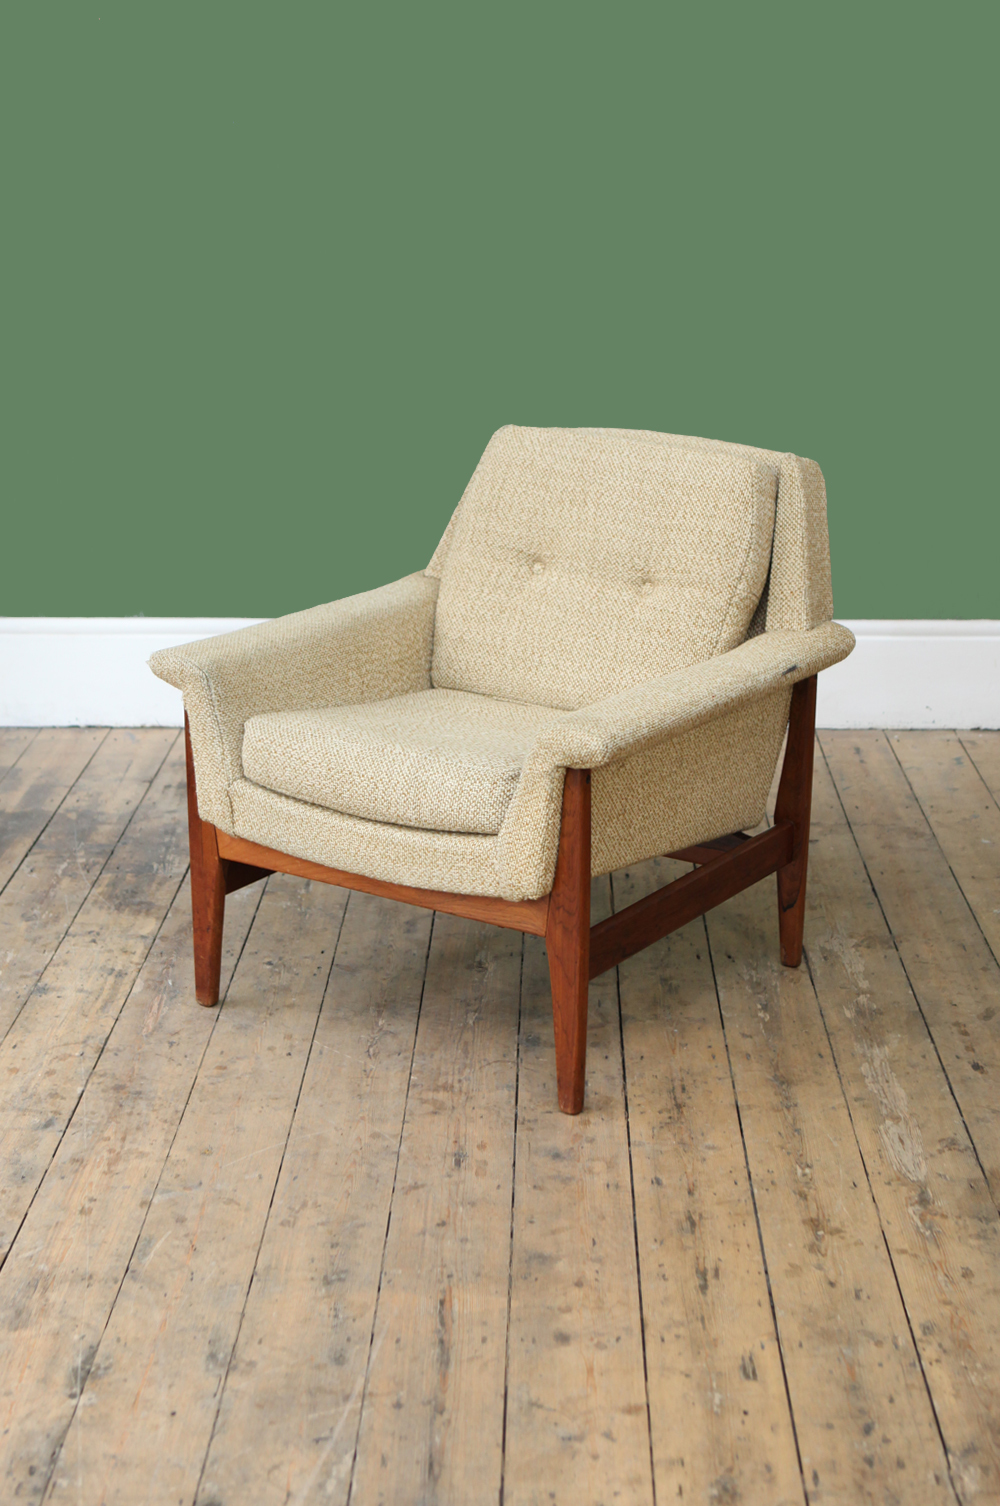 striking-dutch-1960s-armchair